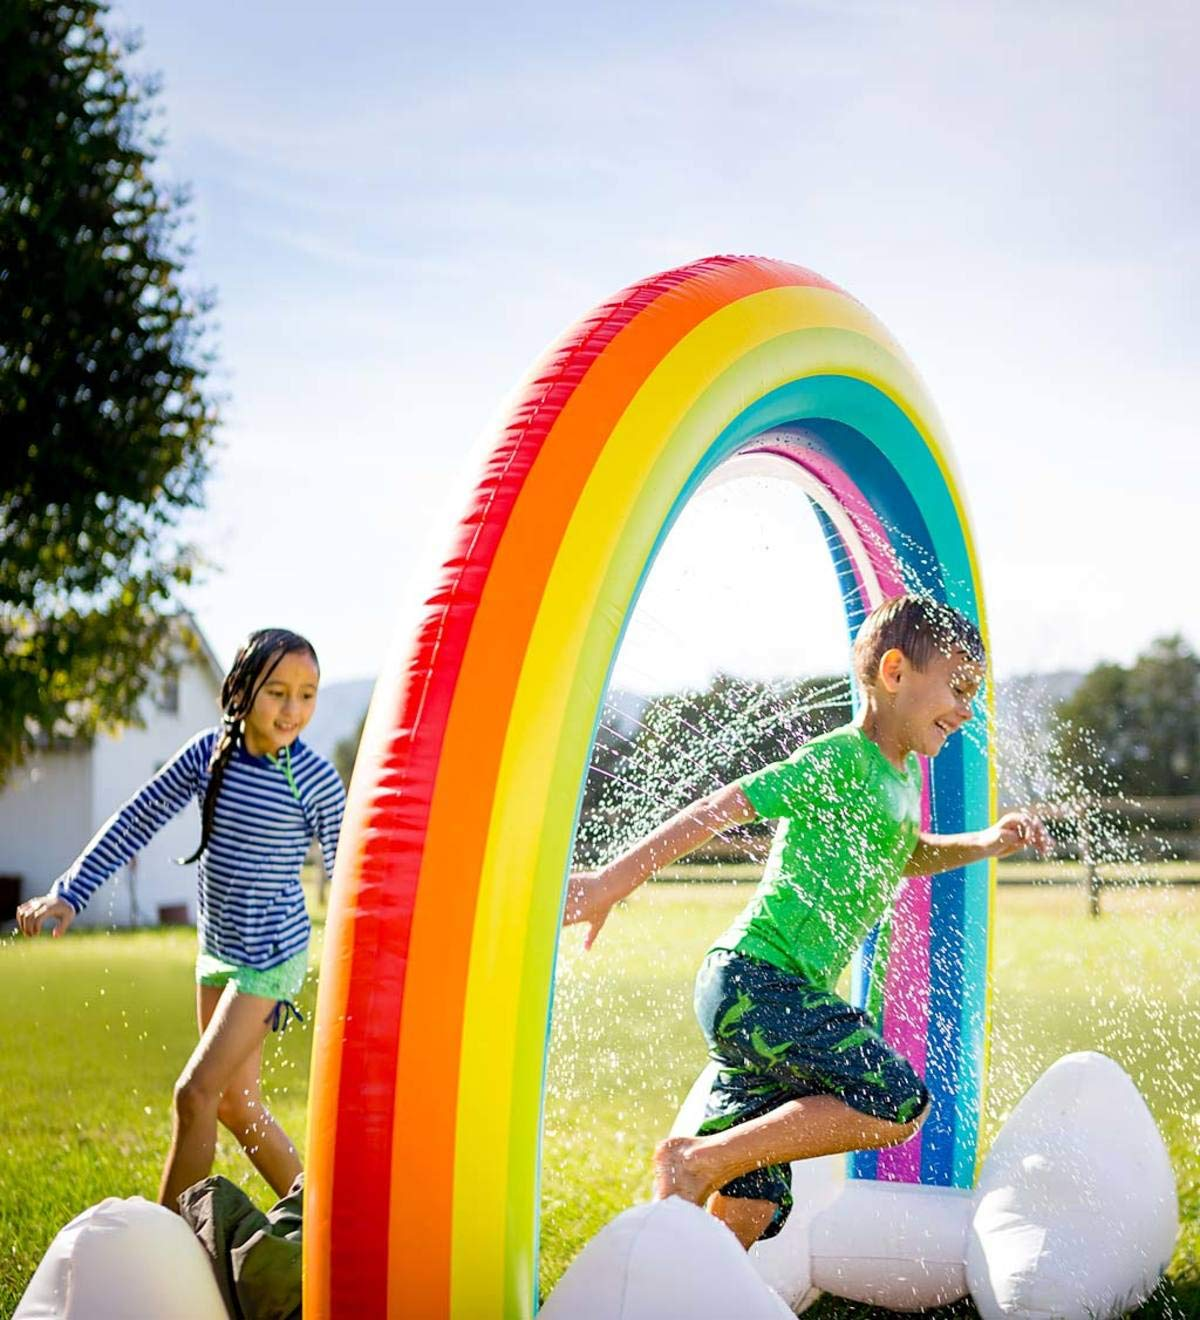 HearthSong® Giant Inflatable Rainbow Arch Sprinkler - Approx 93 L x 37 W x 67 H When inflated by HearthSong®